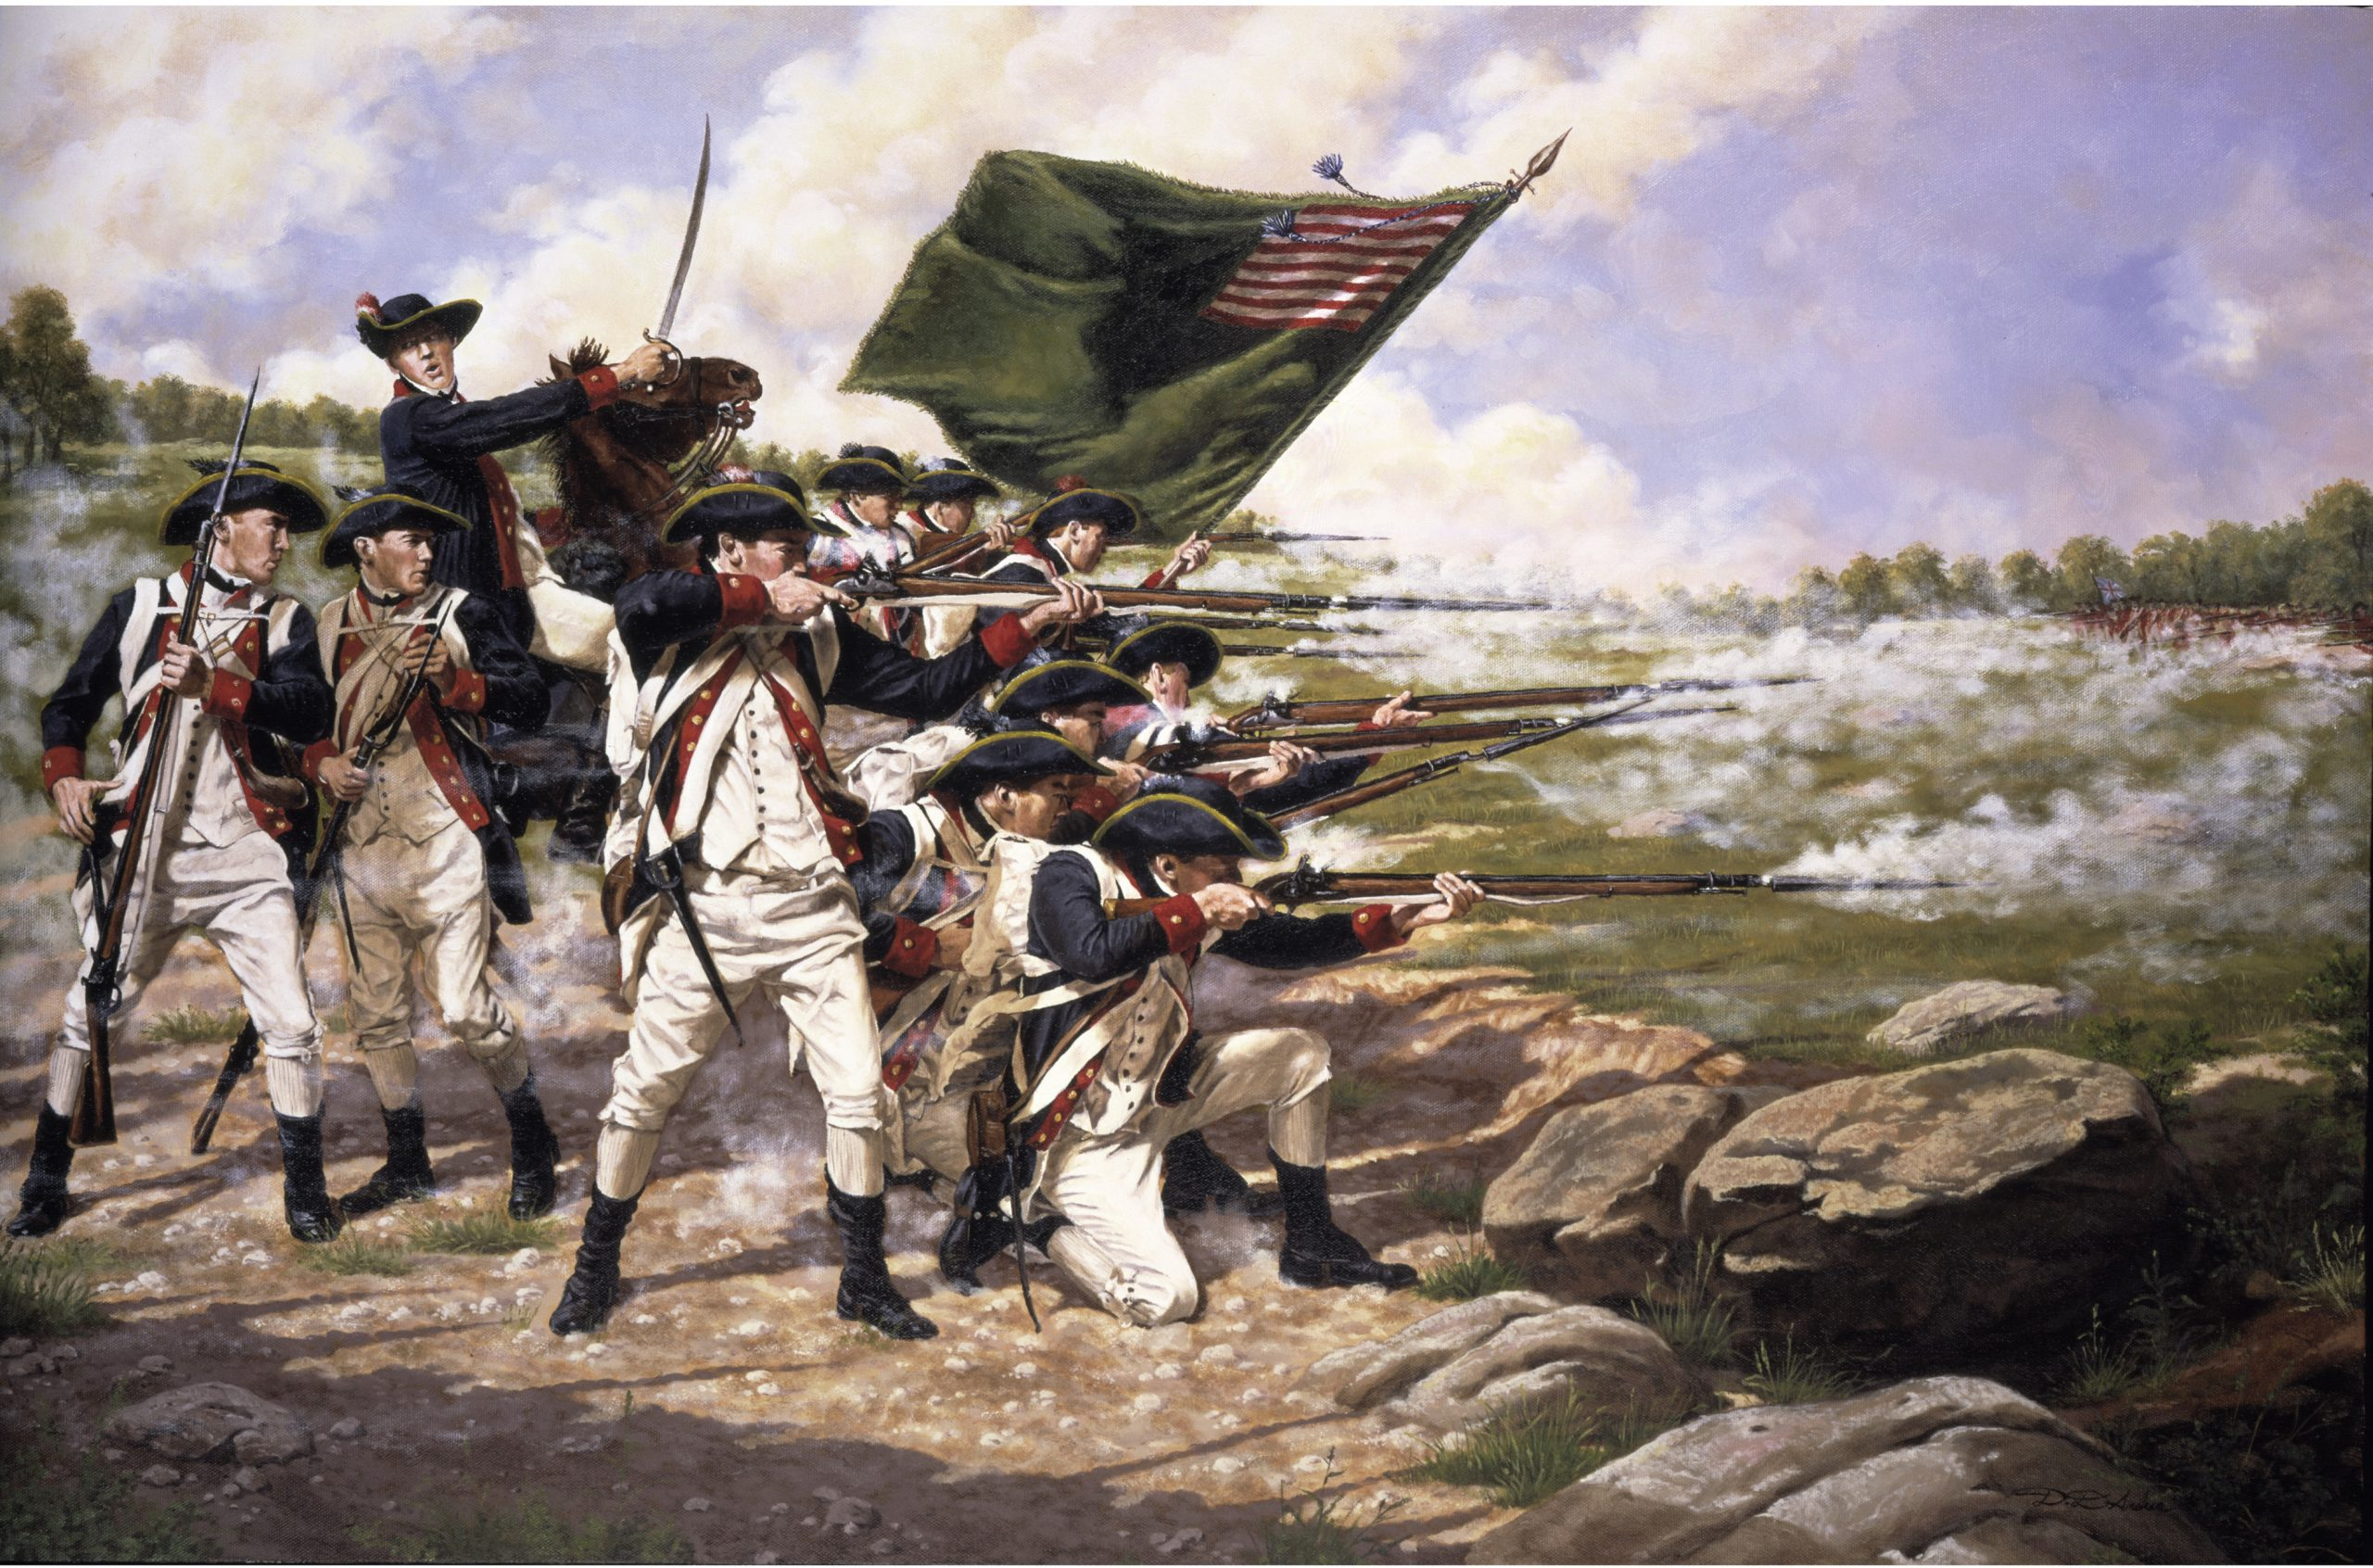 The Battle of Long Island also known as Battle of Brooklyn